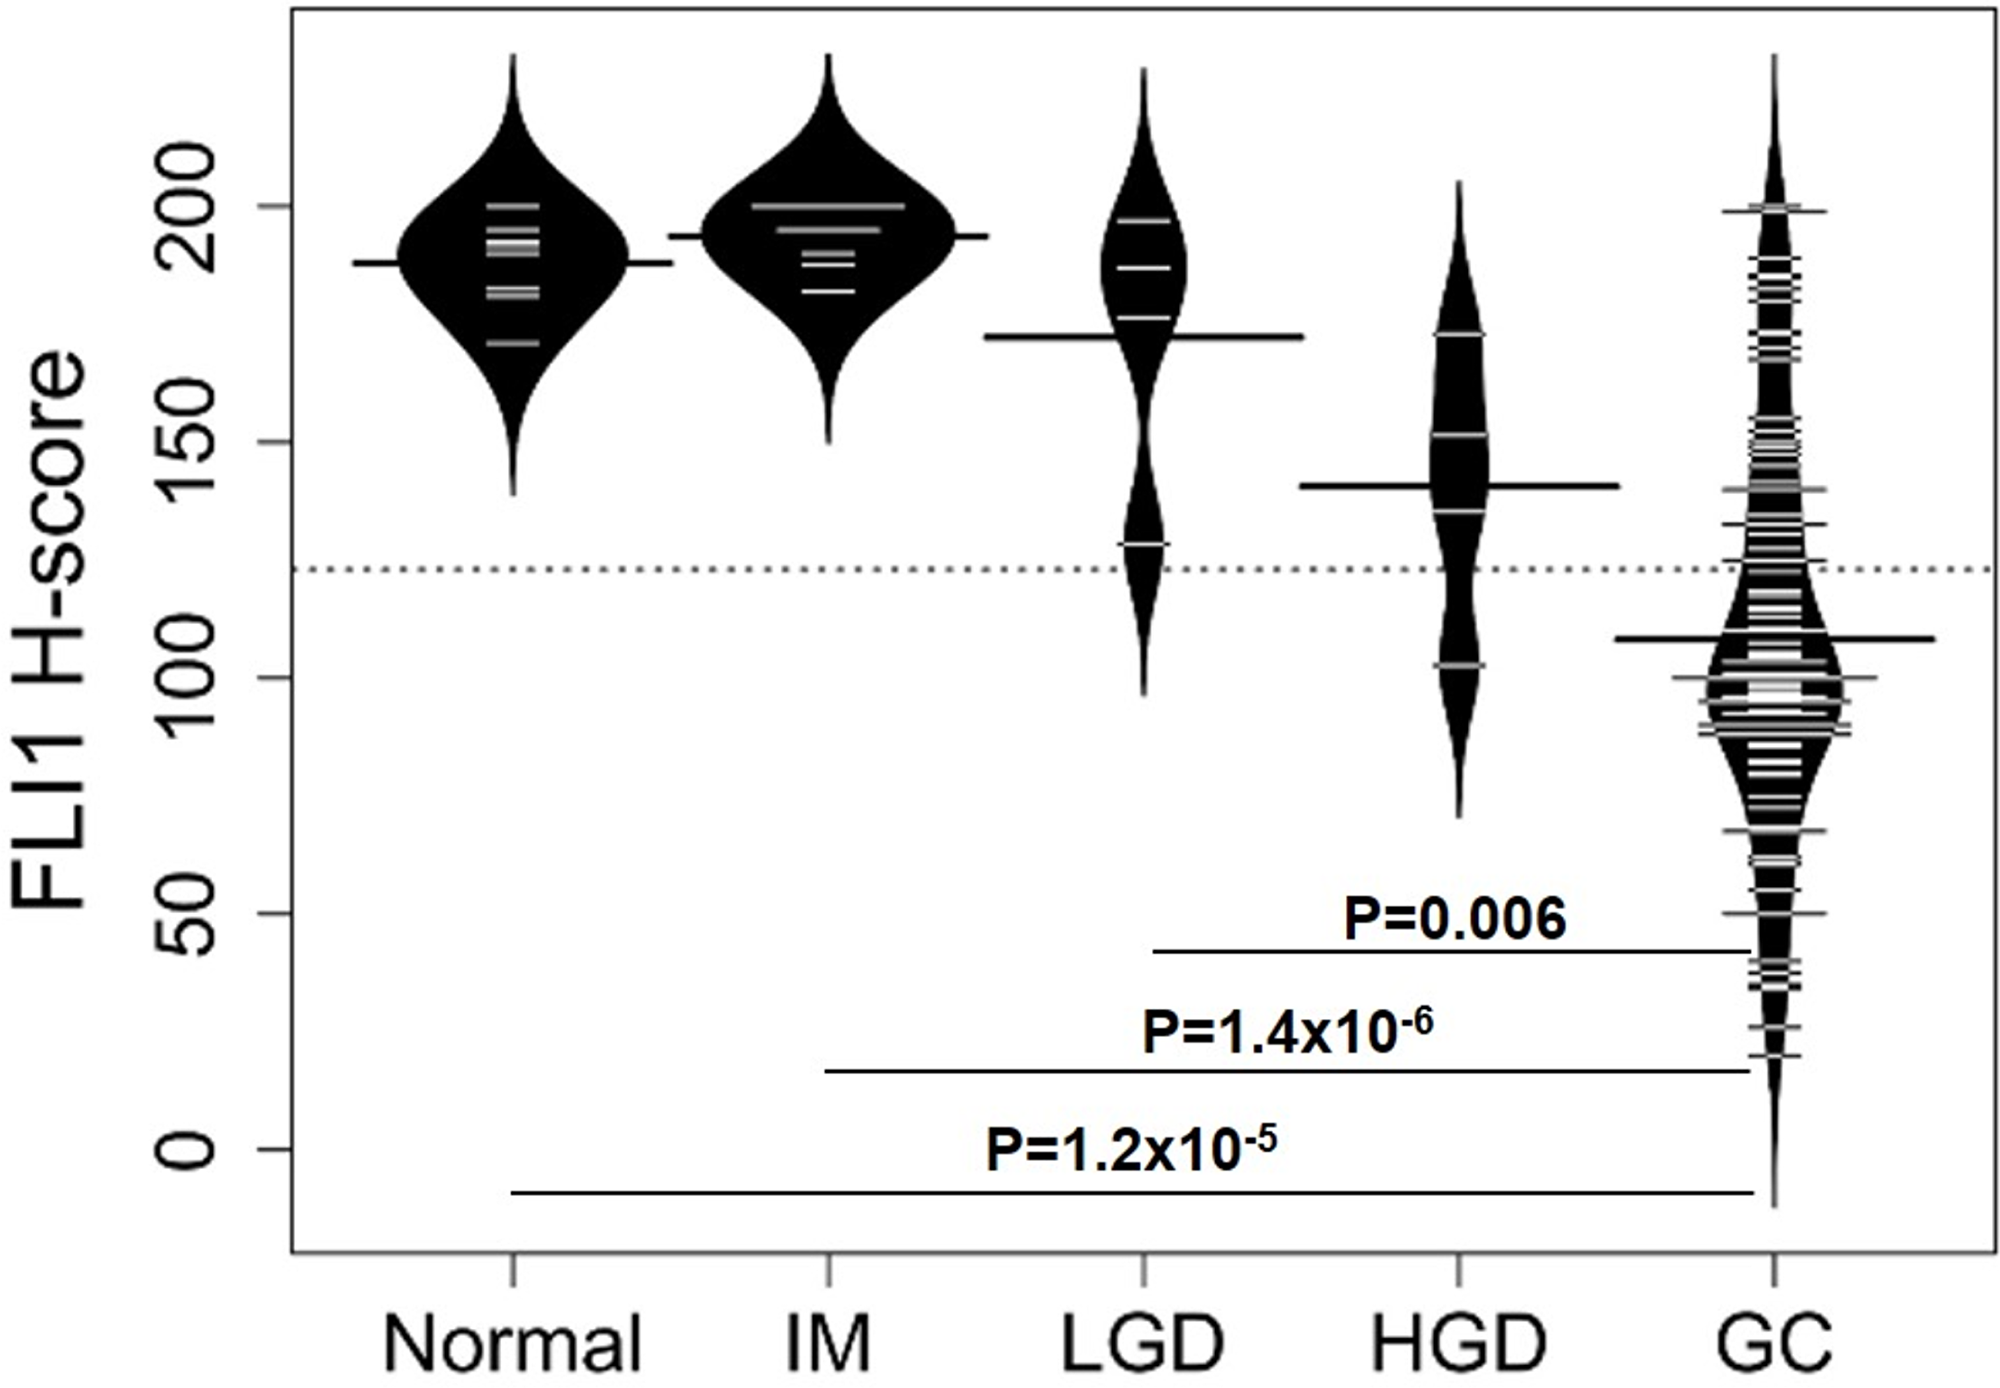 Distributions of FLI1 H-scores for different types of gastric tissue